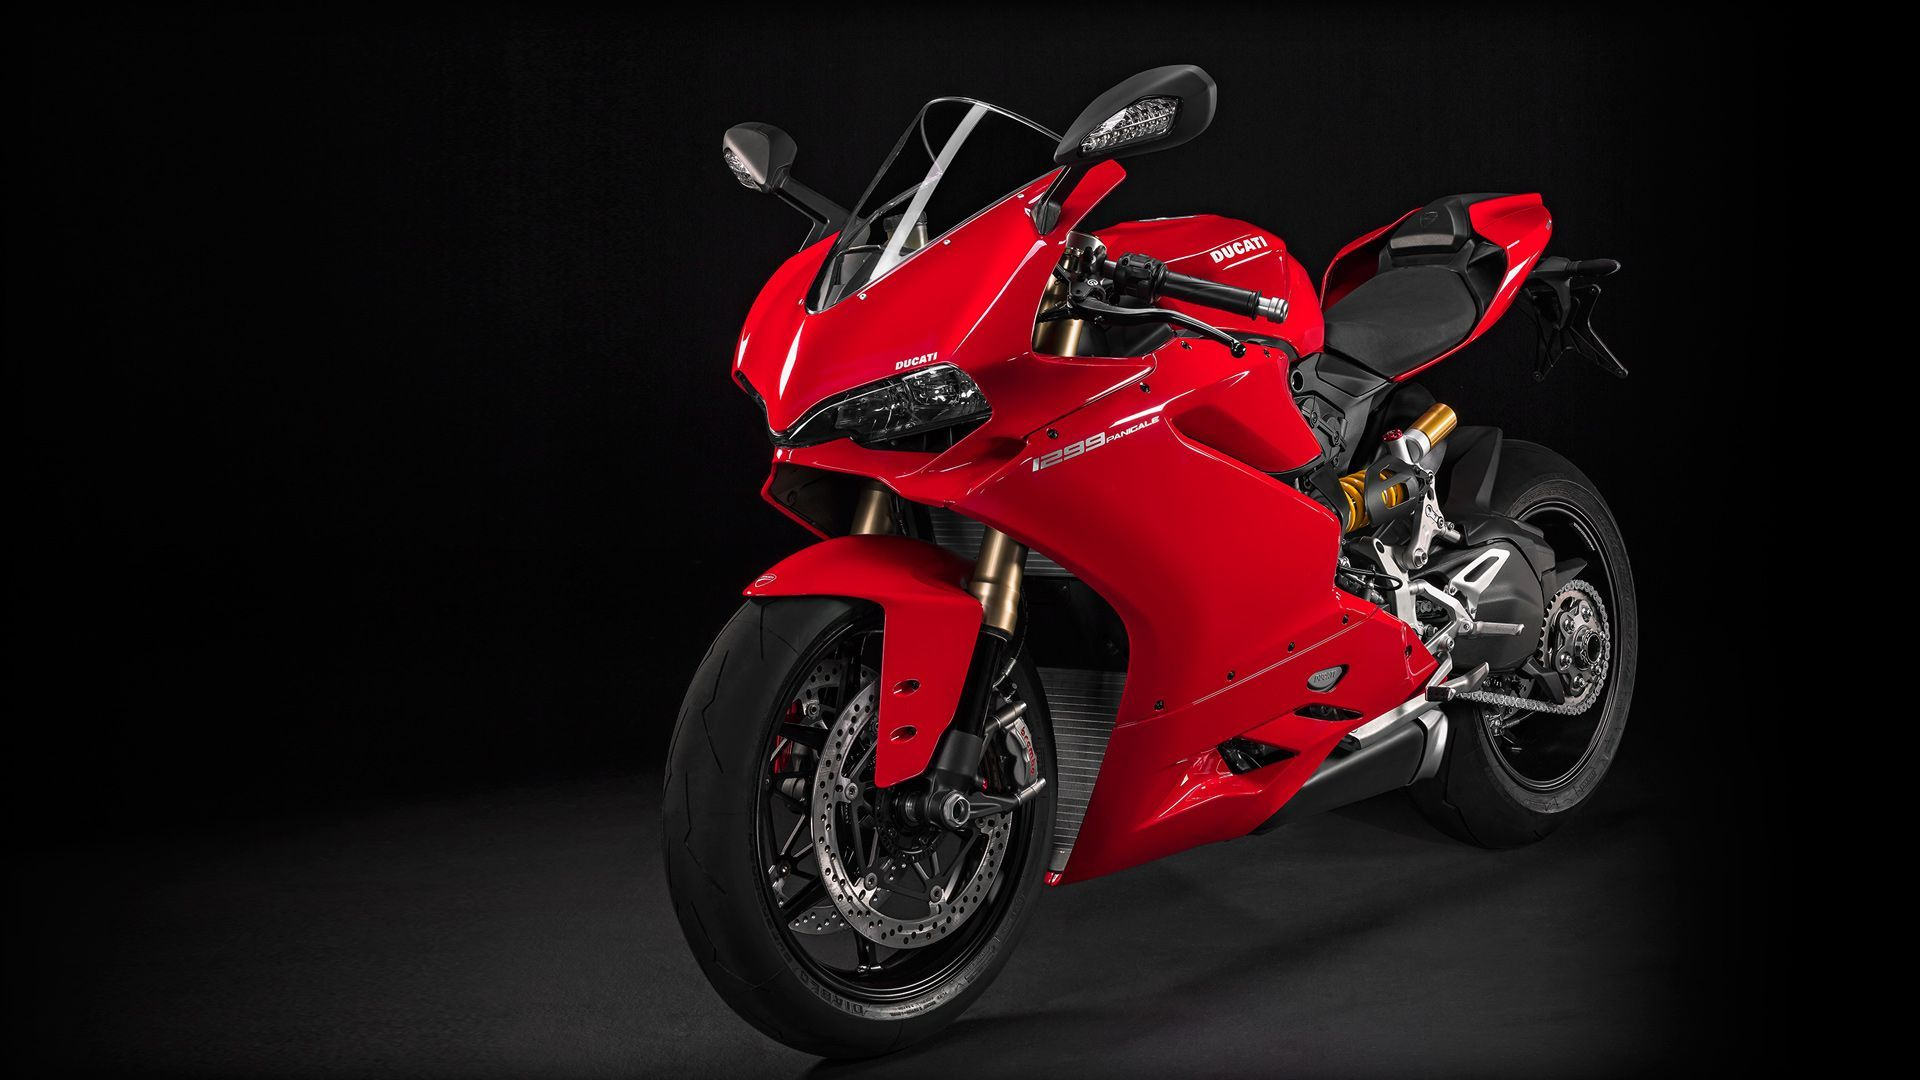 2015 Ducati 1299 Panigale | 1299 Panigale - Front Left Angle